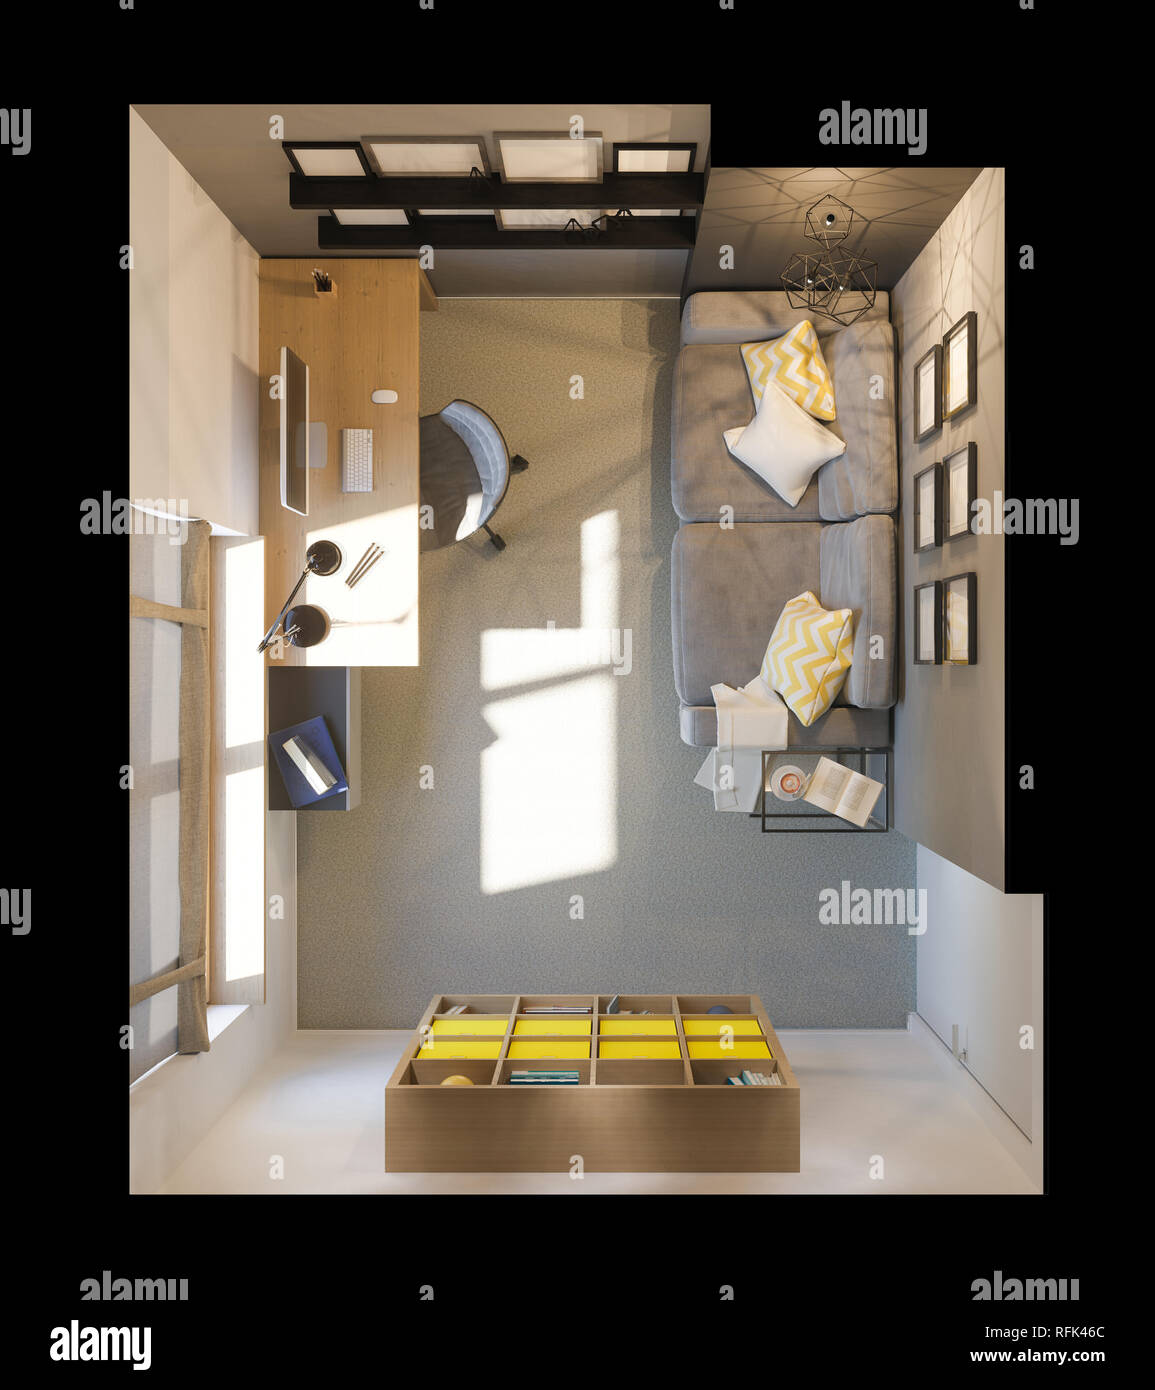 3d Illustration Of Interior Design Plan For Home Office The